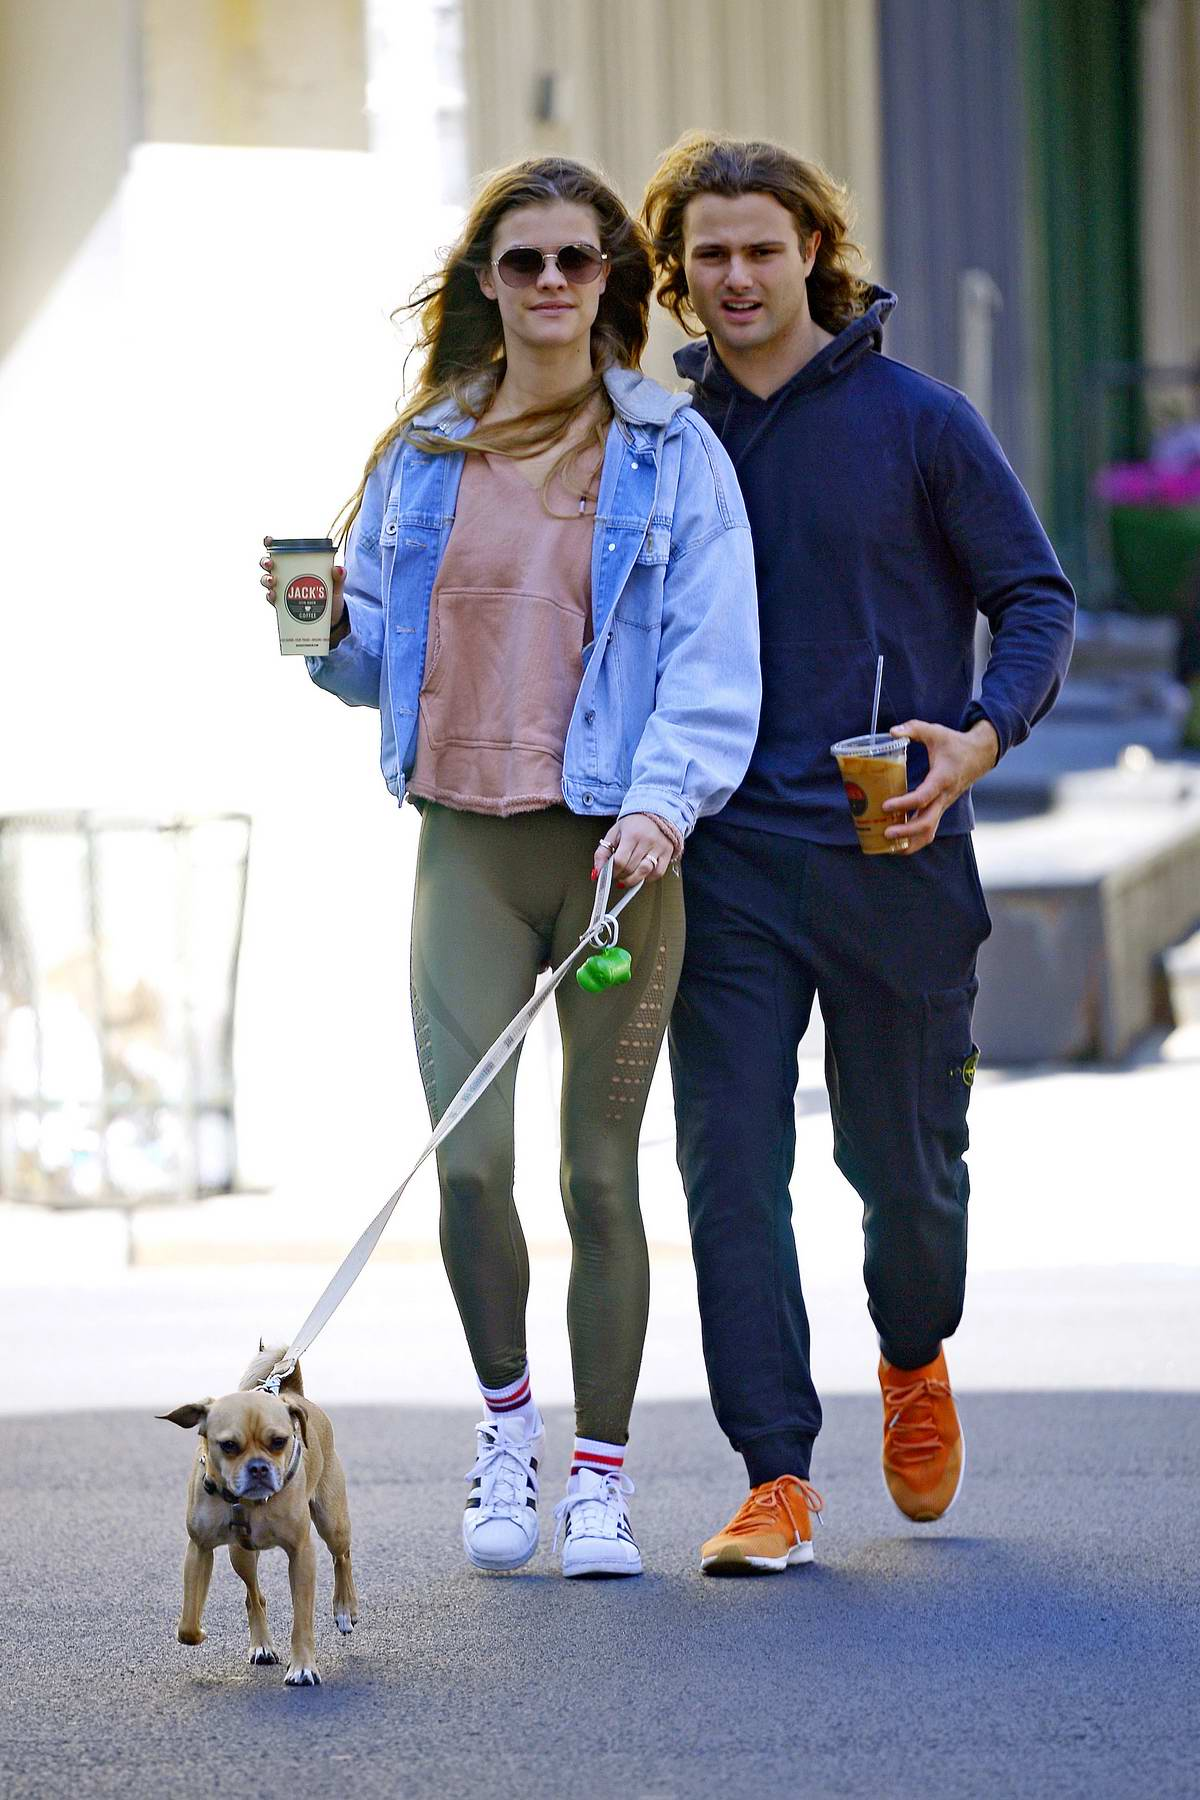 Nina Agdal and Jack Brinkley Cook walk their dog while on a coffee run in New York City